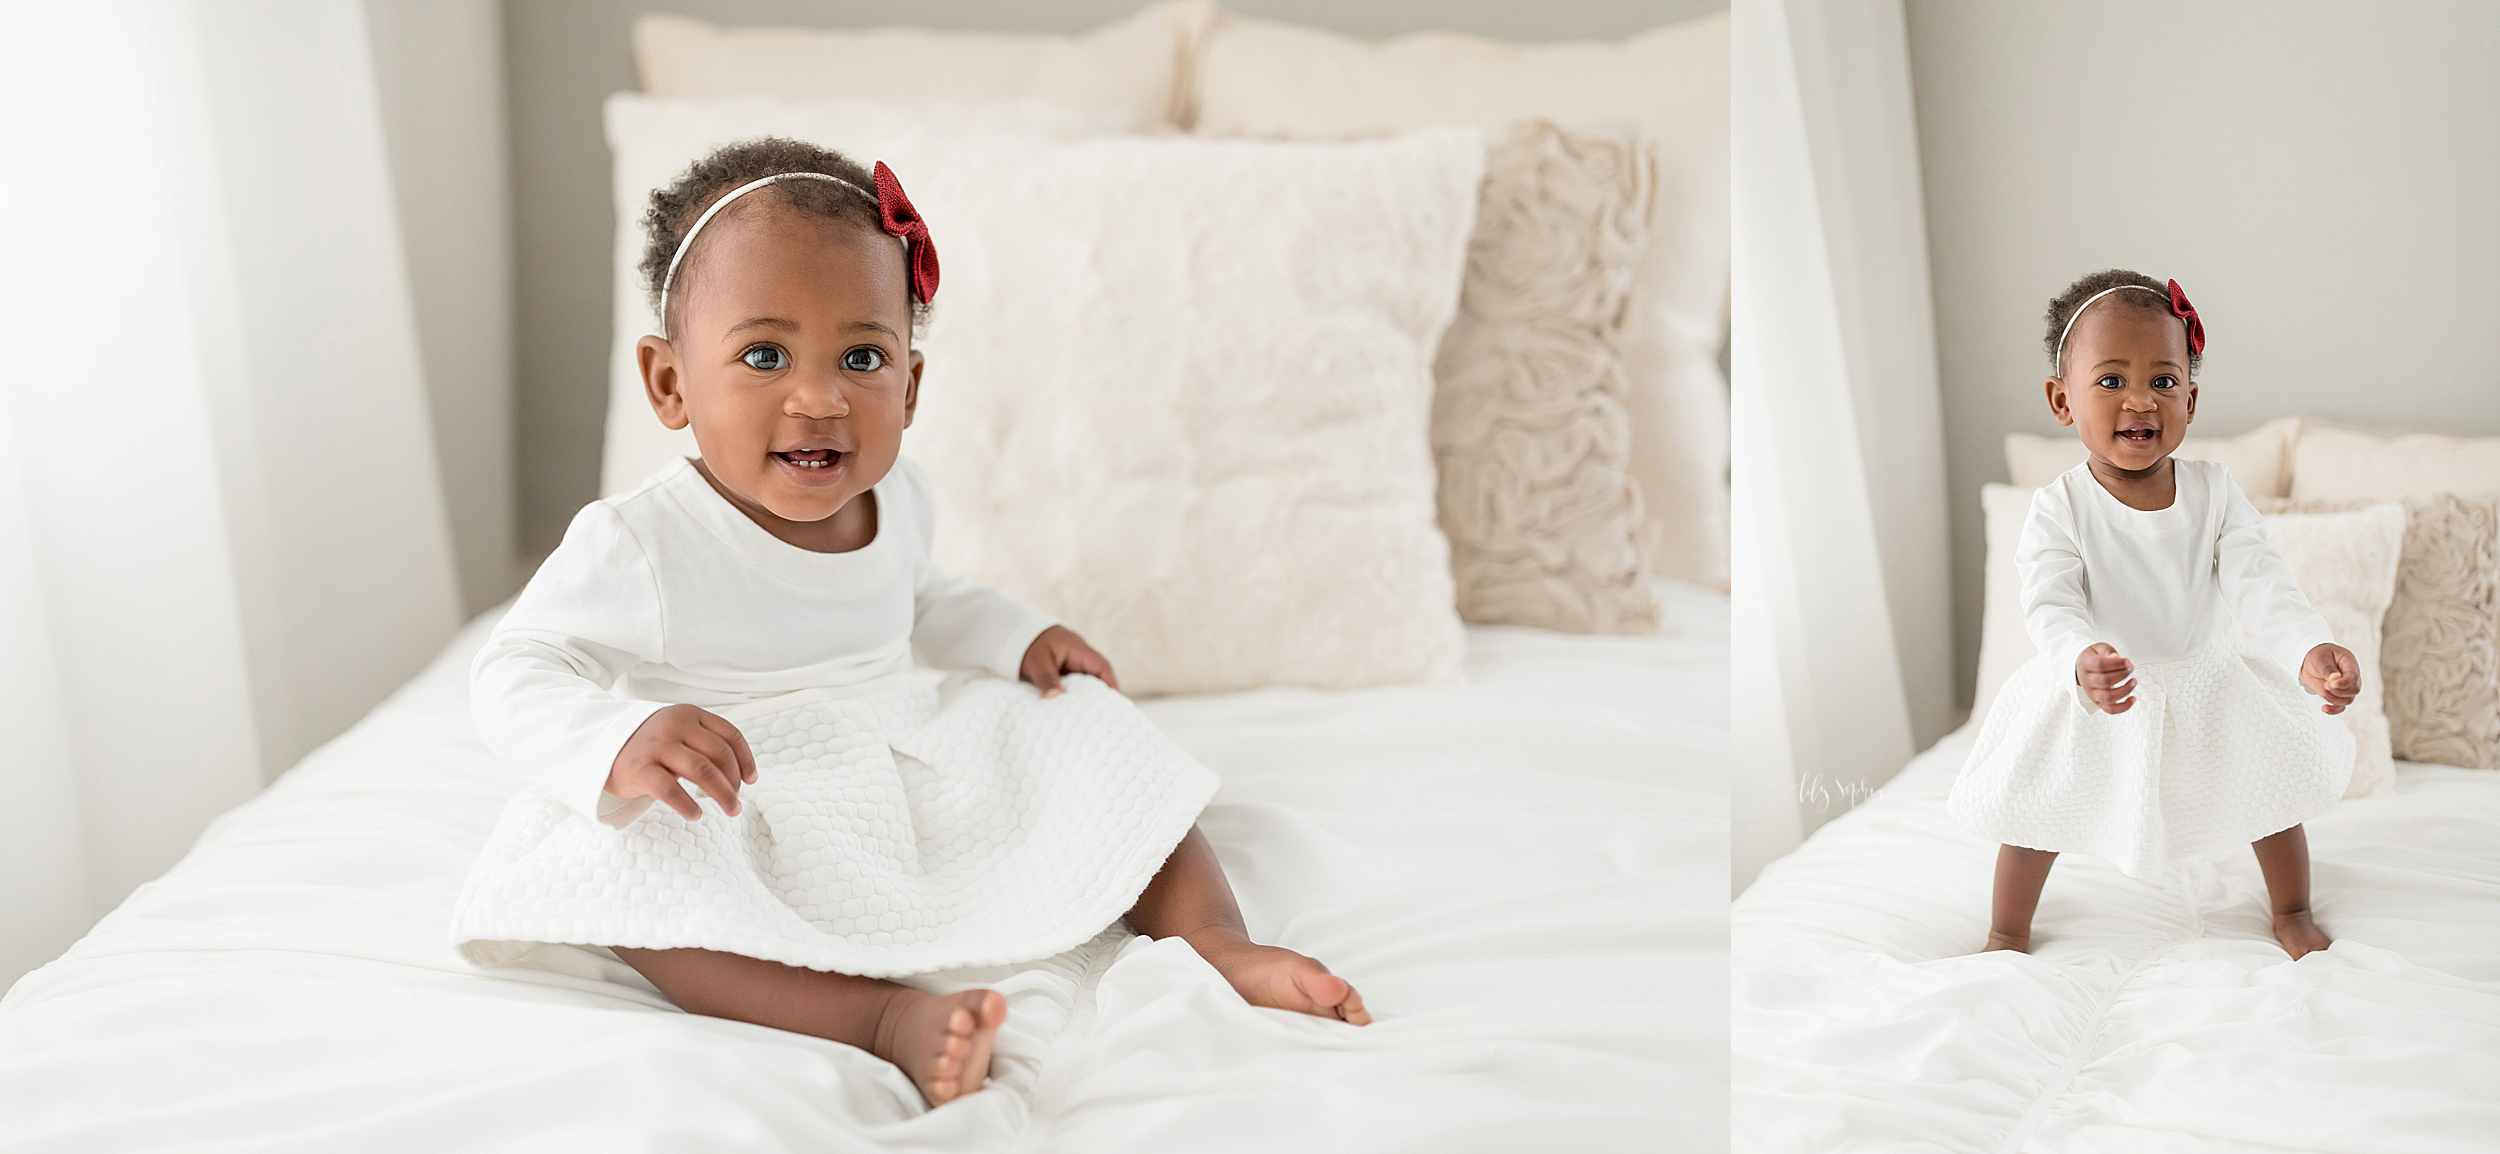 atlanta-smyrna-brookhaven-decatur-lily-sophia-photography-photographer-portraits-grant-park-intown-first-birthday-cake-smash-one-year-old-toddler-baby-girl_0001.jpg